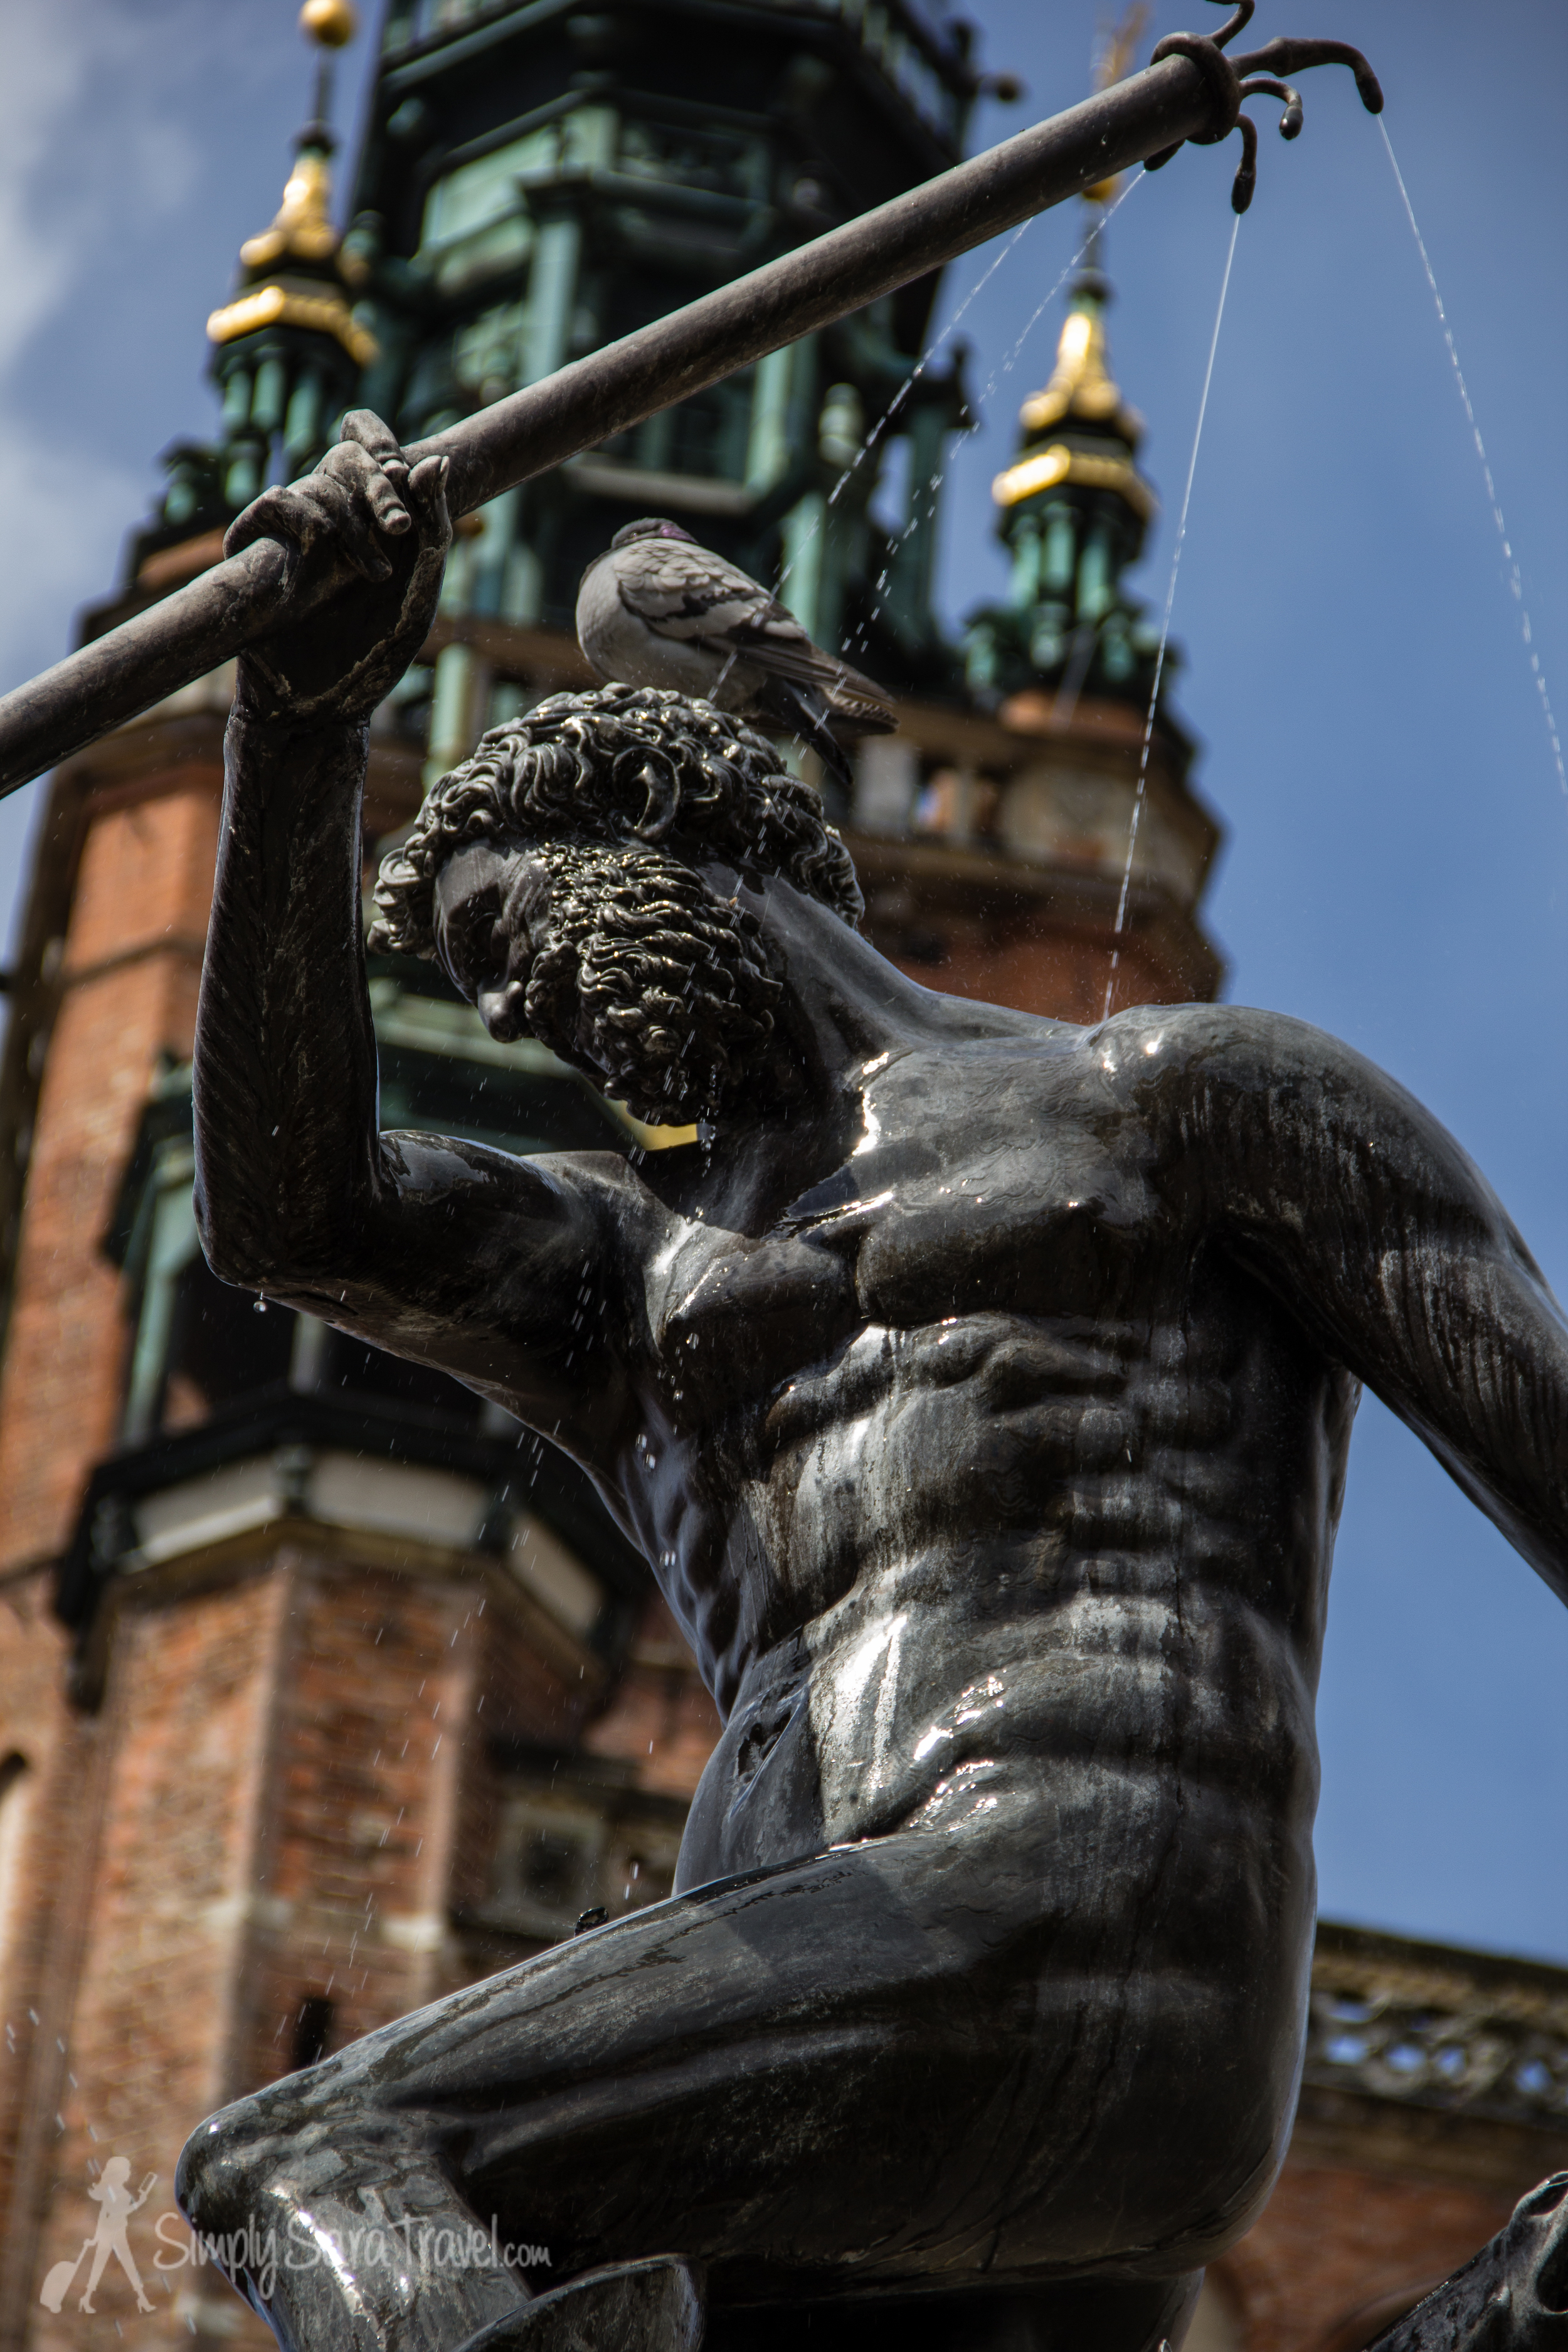 Neptune, God of the Sea, appropriately chosen for a maritime city